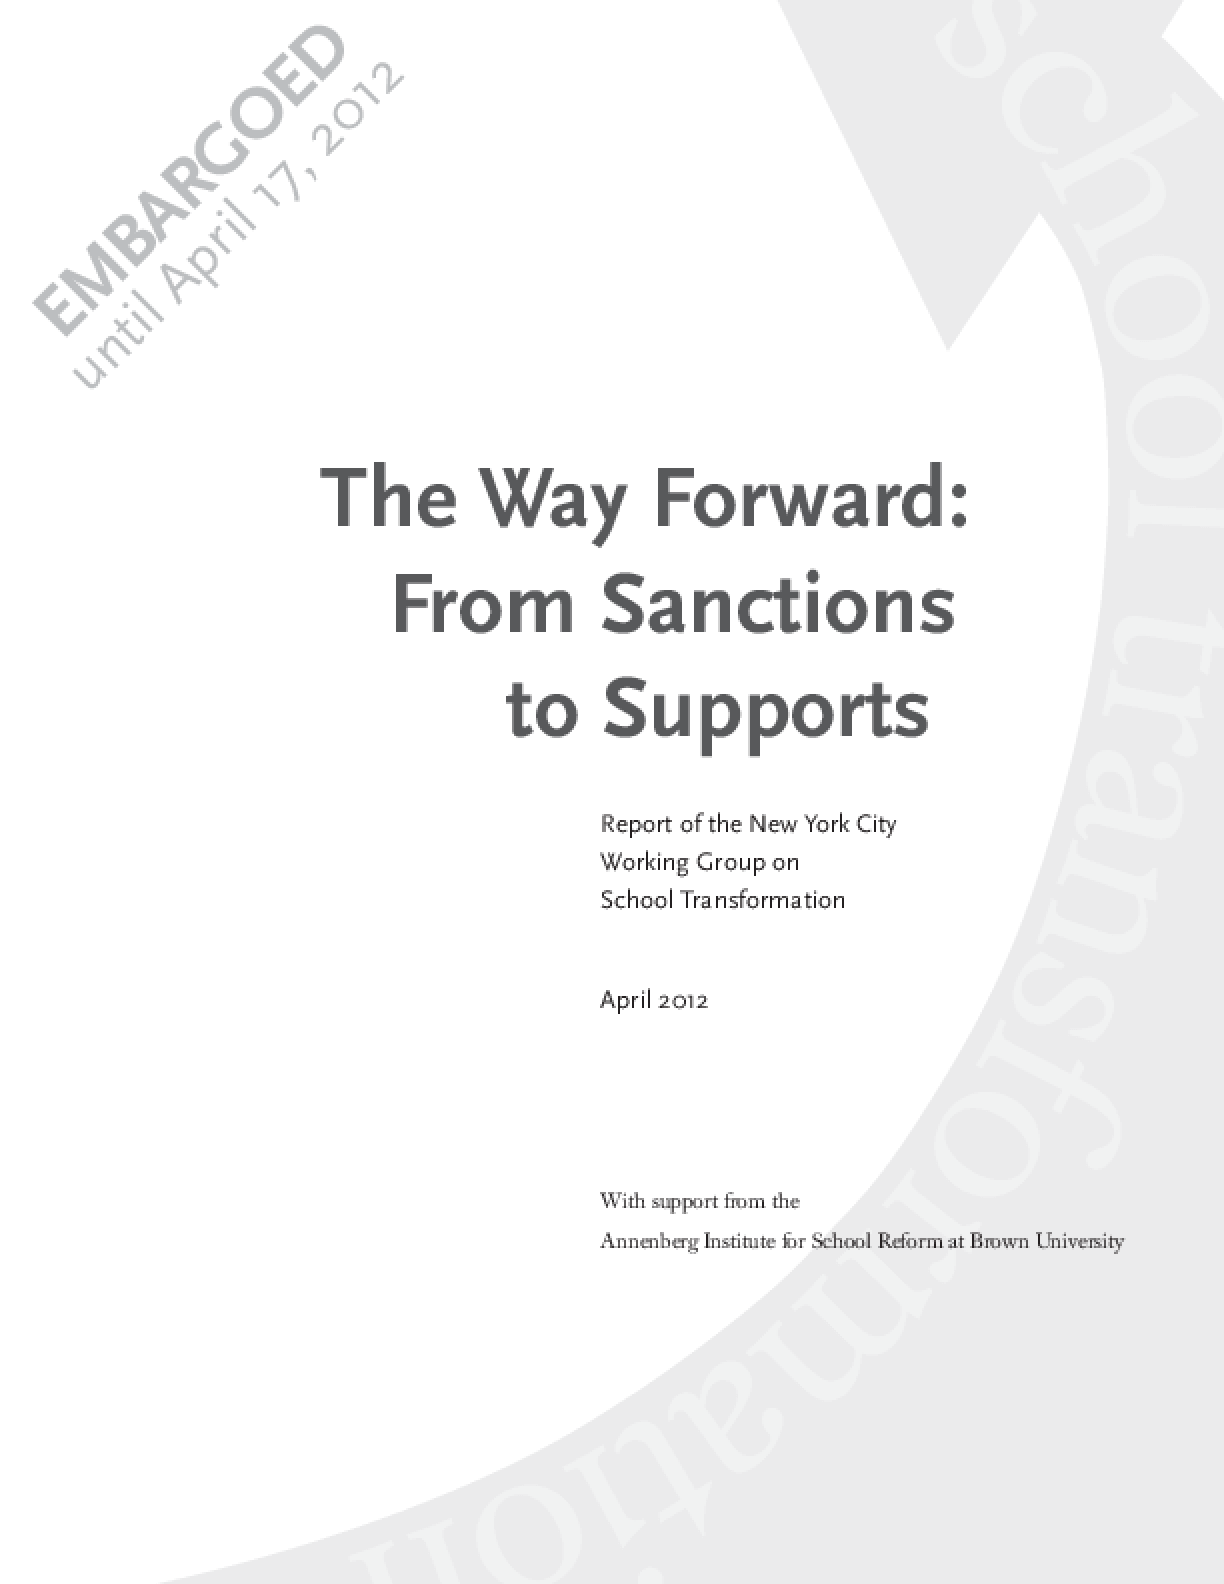 The Way Forward: From Sanctions to Supports